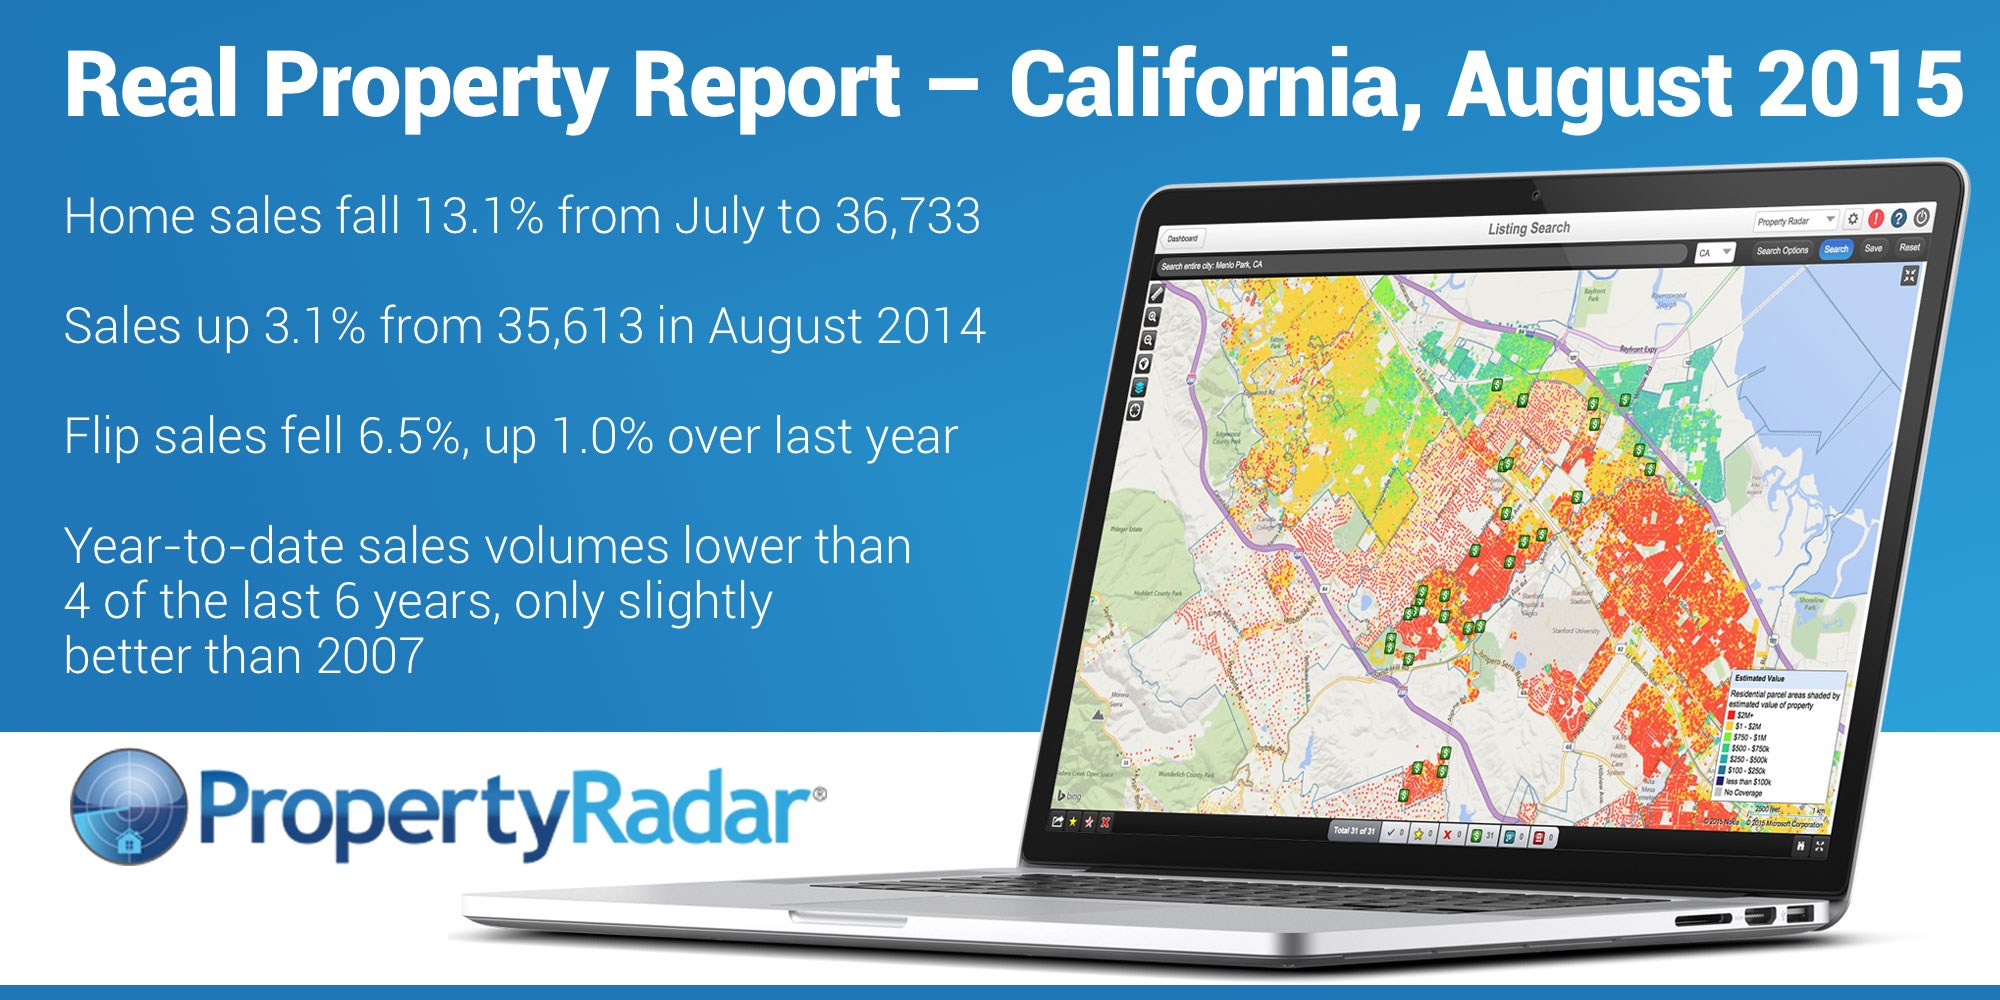 Real Property Report California August 2015: California Sales Stuck in Doldrums, Down 13.1 Percent from July, Median Price Falls 1.2 Percent to $415,000